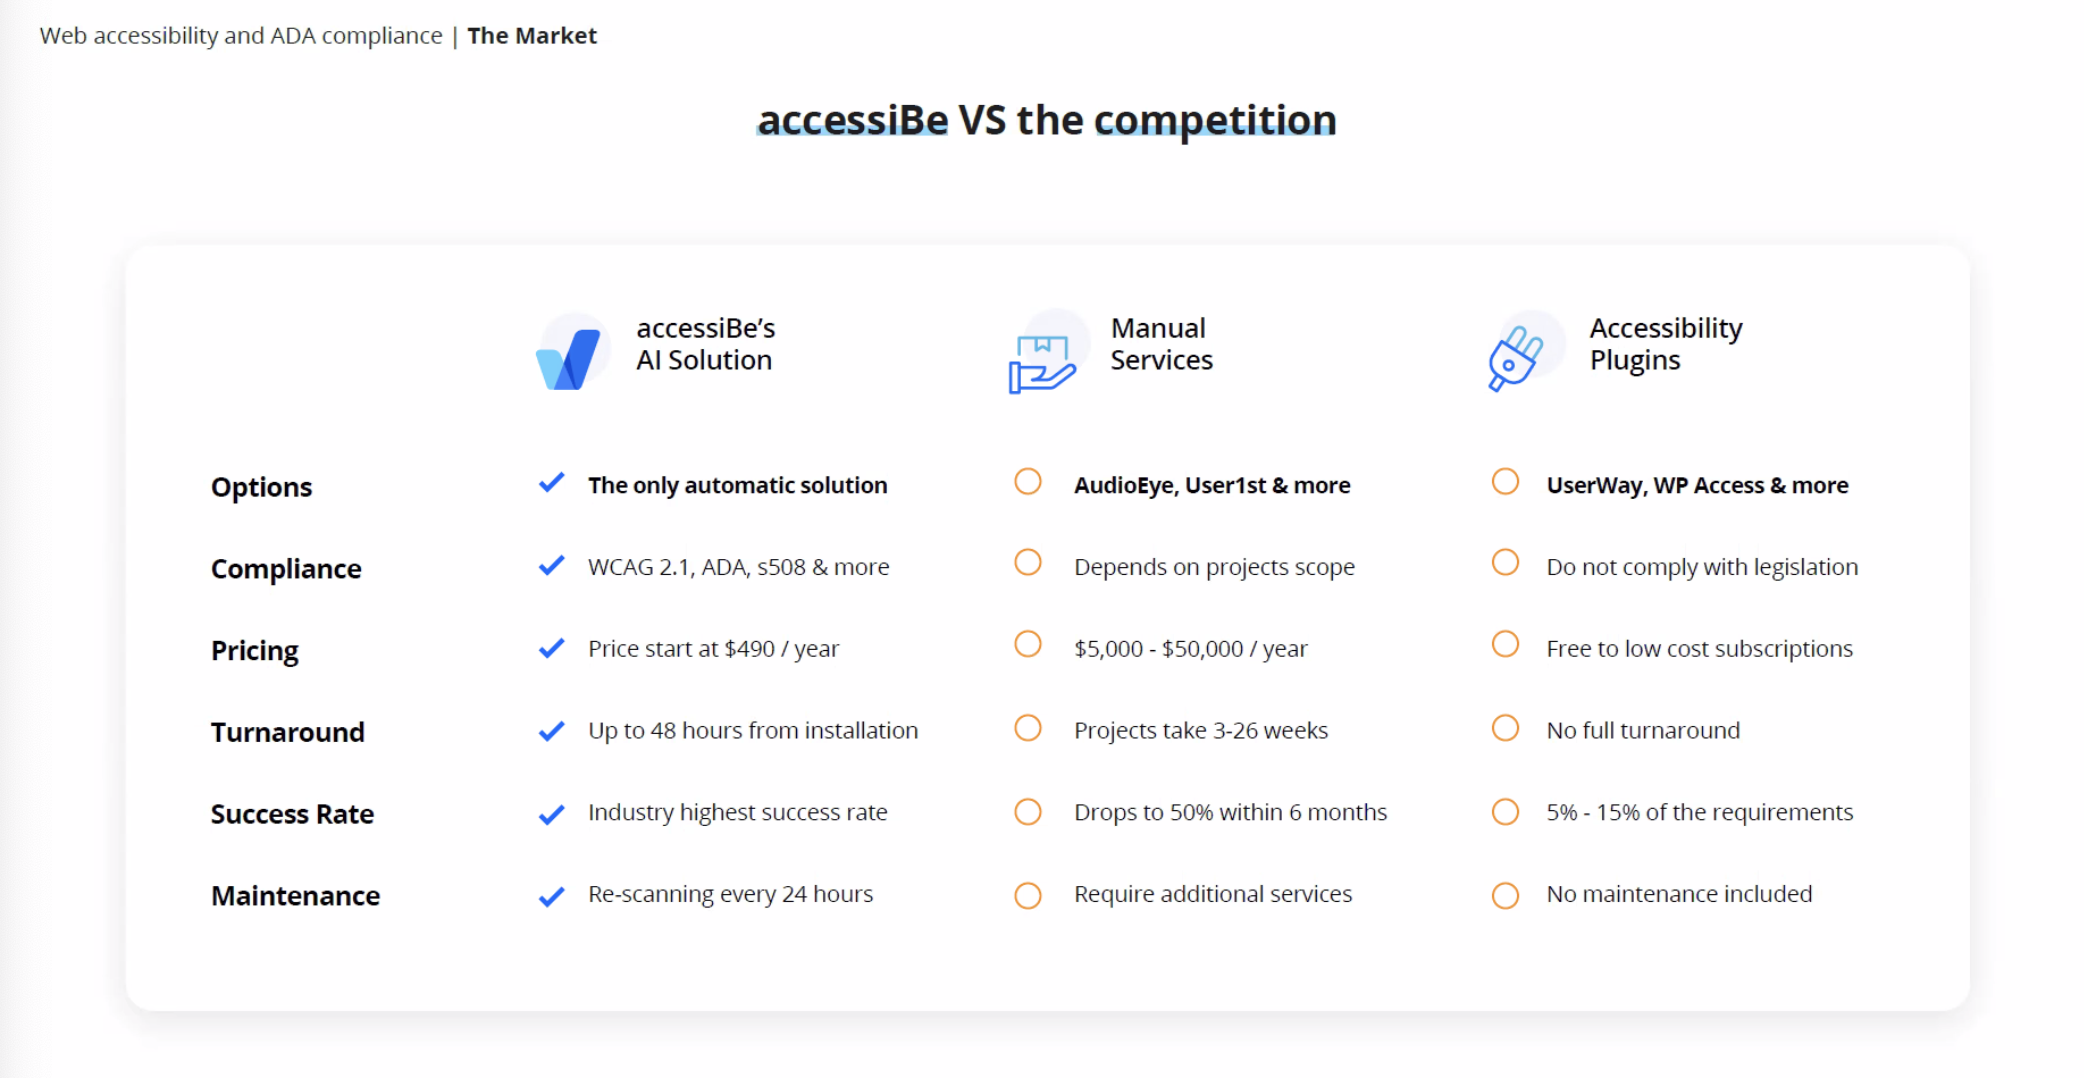 accessiBe vs the competition